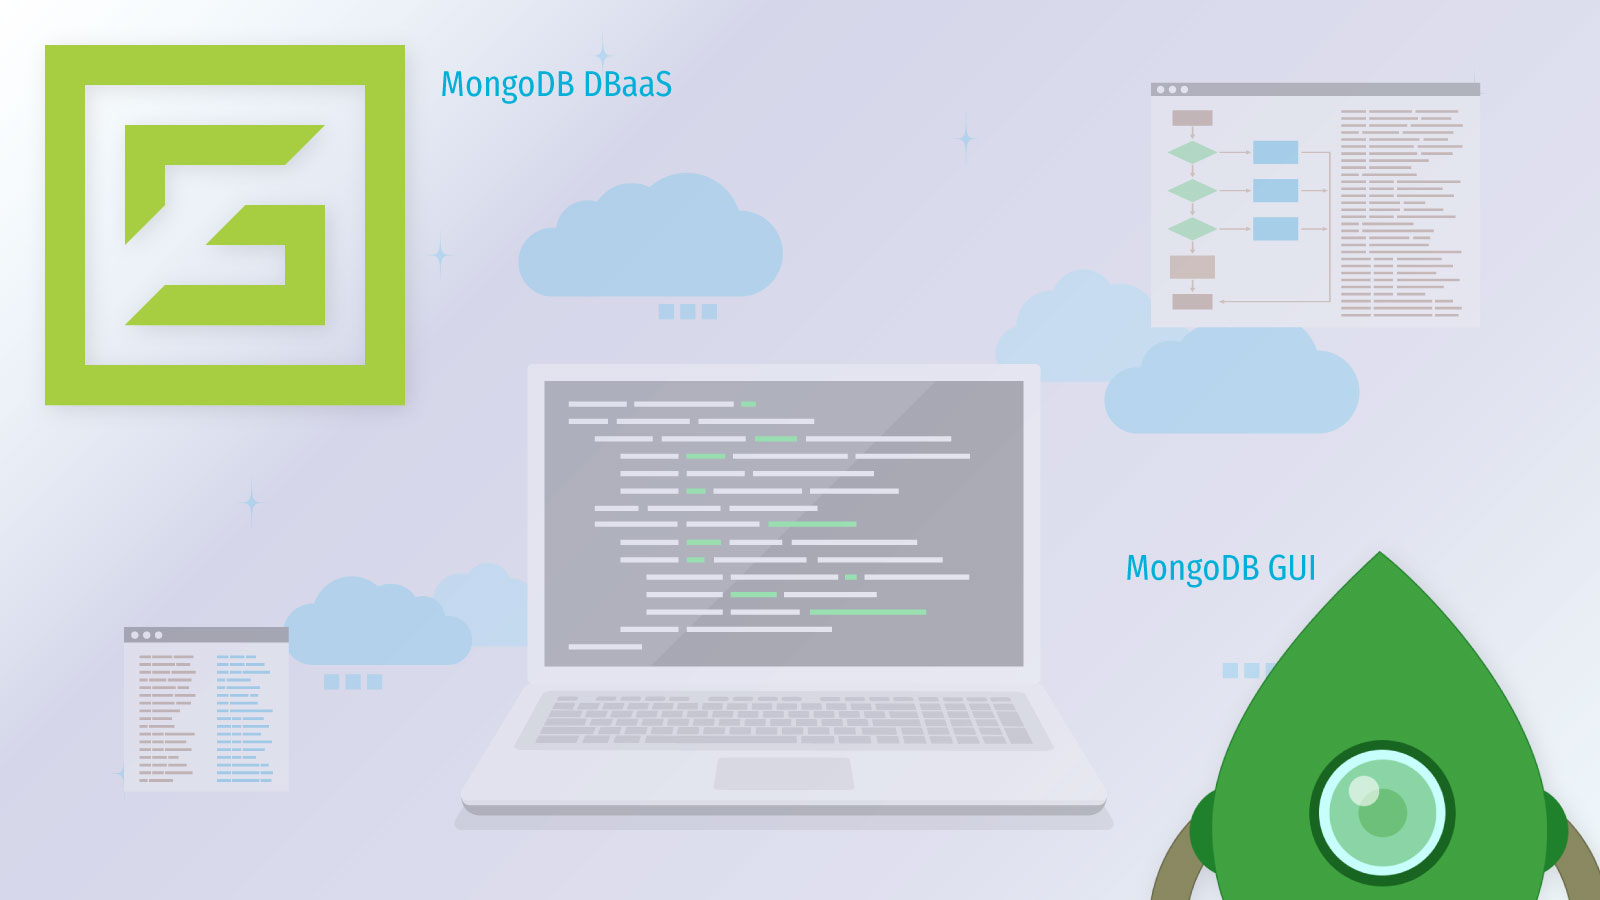 How To Connect To Your MongoDB Deployments Using Robo 3T GUI